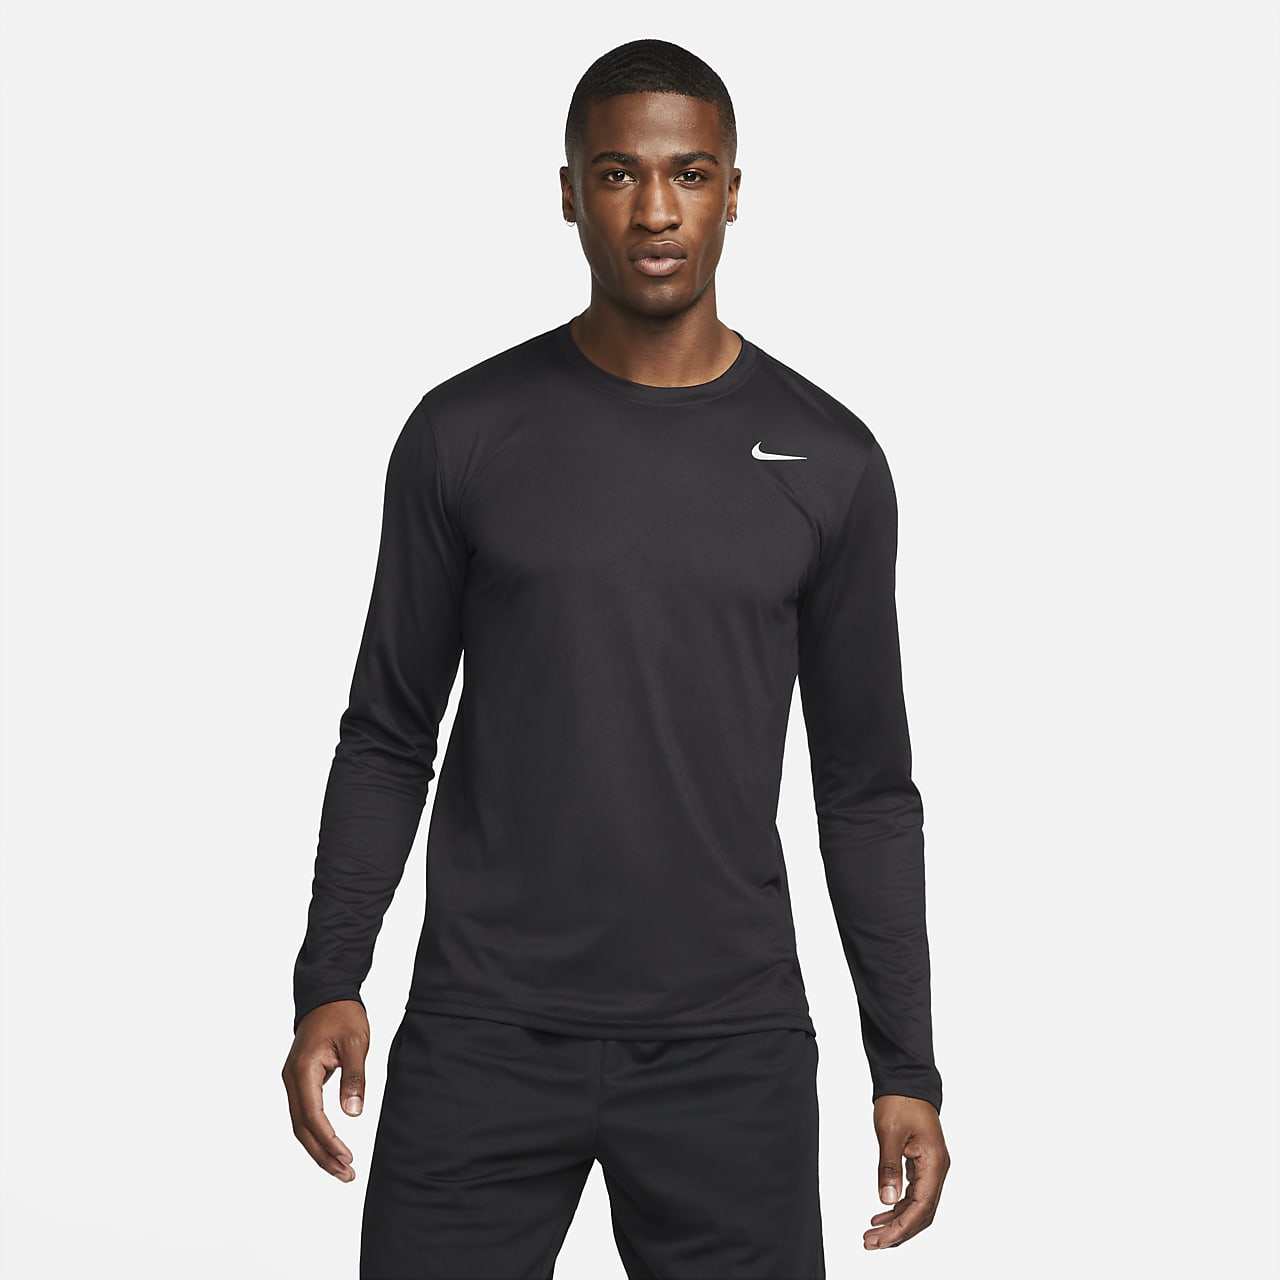 ceb02299ee63 Nike Dri-FIT Legend 2.0 Men s Long-Sleeve Training Top. Nike.com